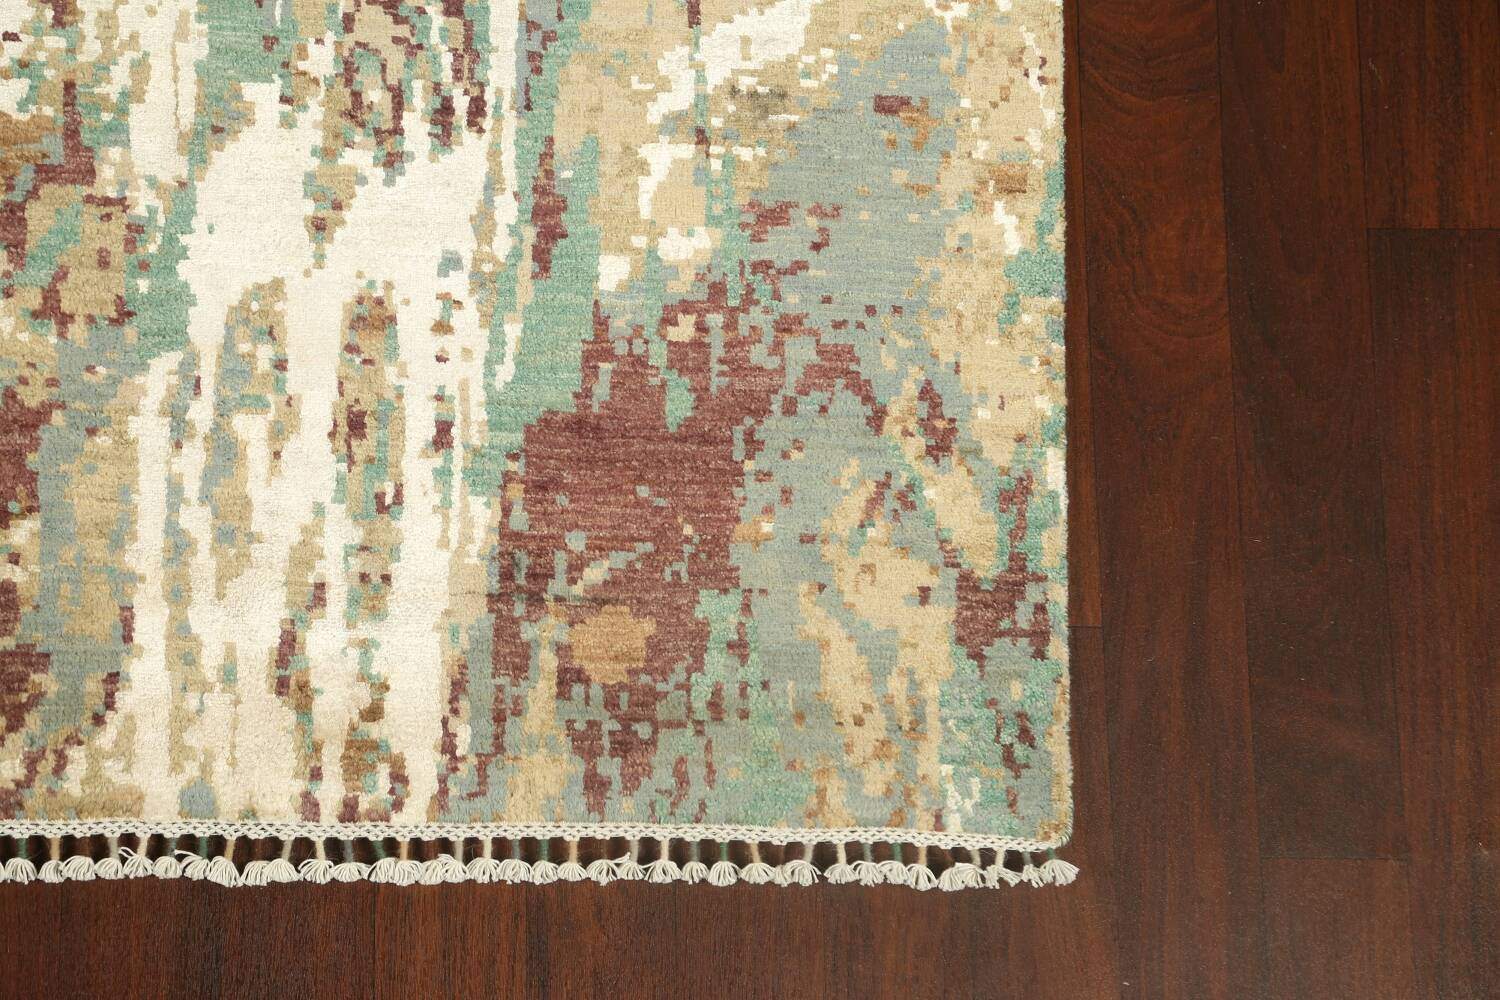 Vegetable Dye Contemporary Abstract Oriental Area Rug 6x9 image 5